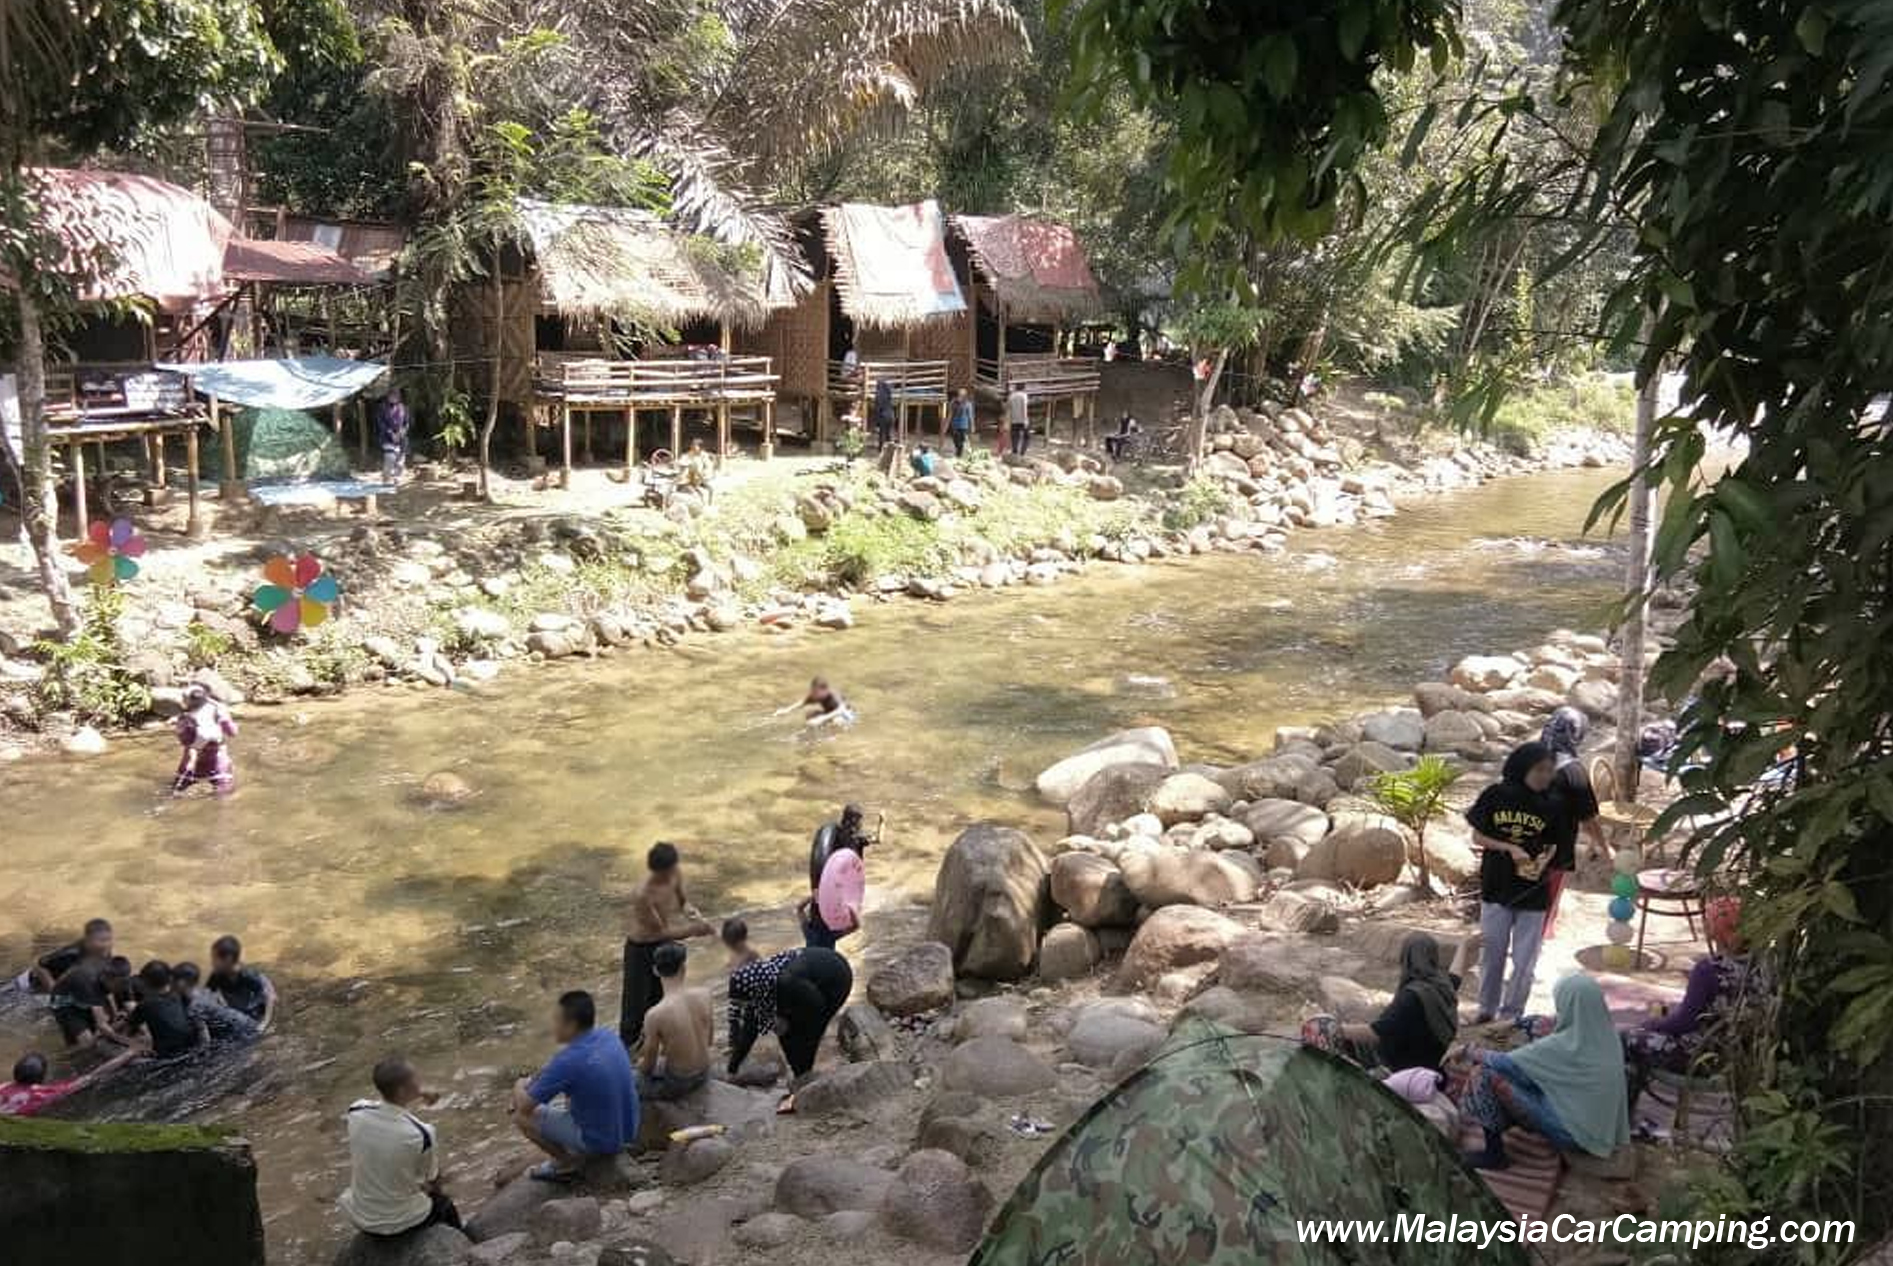 sungai_bil_cool_spring_ulu_slim_perak_outdoor_activity_car_camping_site_malaysia_car_camping-8